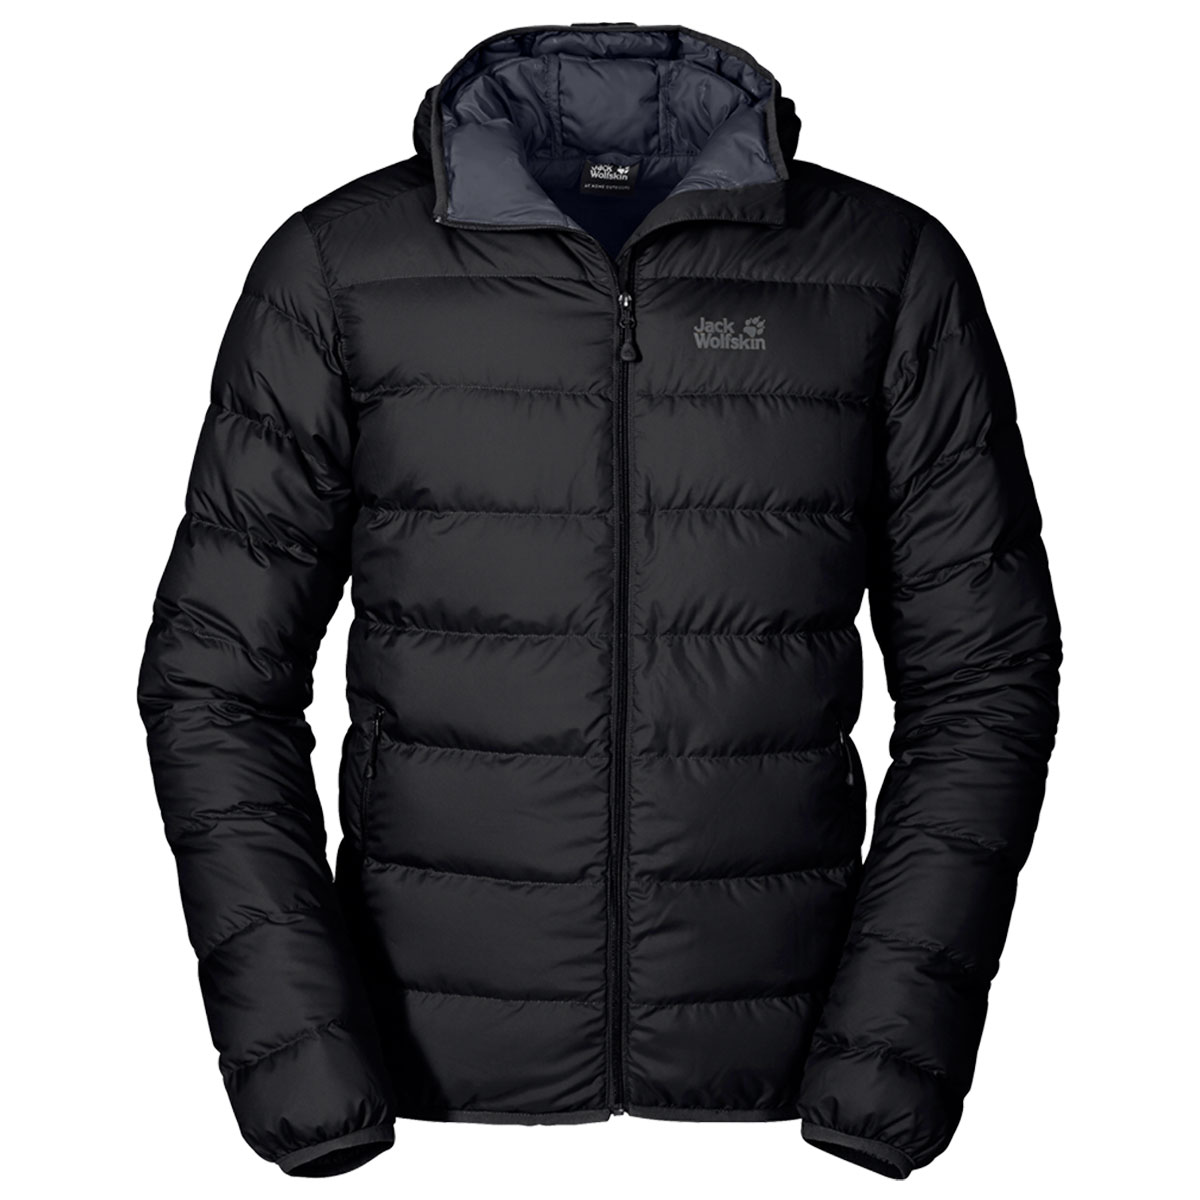 Learn More About Men's Jackets & Winter Coats Selection. Thermal insulated down jackets are great for a backcountry trek or cold-weather walk in the city. Carve up slopes in an insulated jacket. Insulated jackets designed with stretchable fabric allow you to maintain more natural mobility. Think about whether you need a jacket that has.